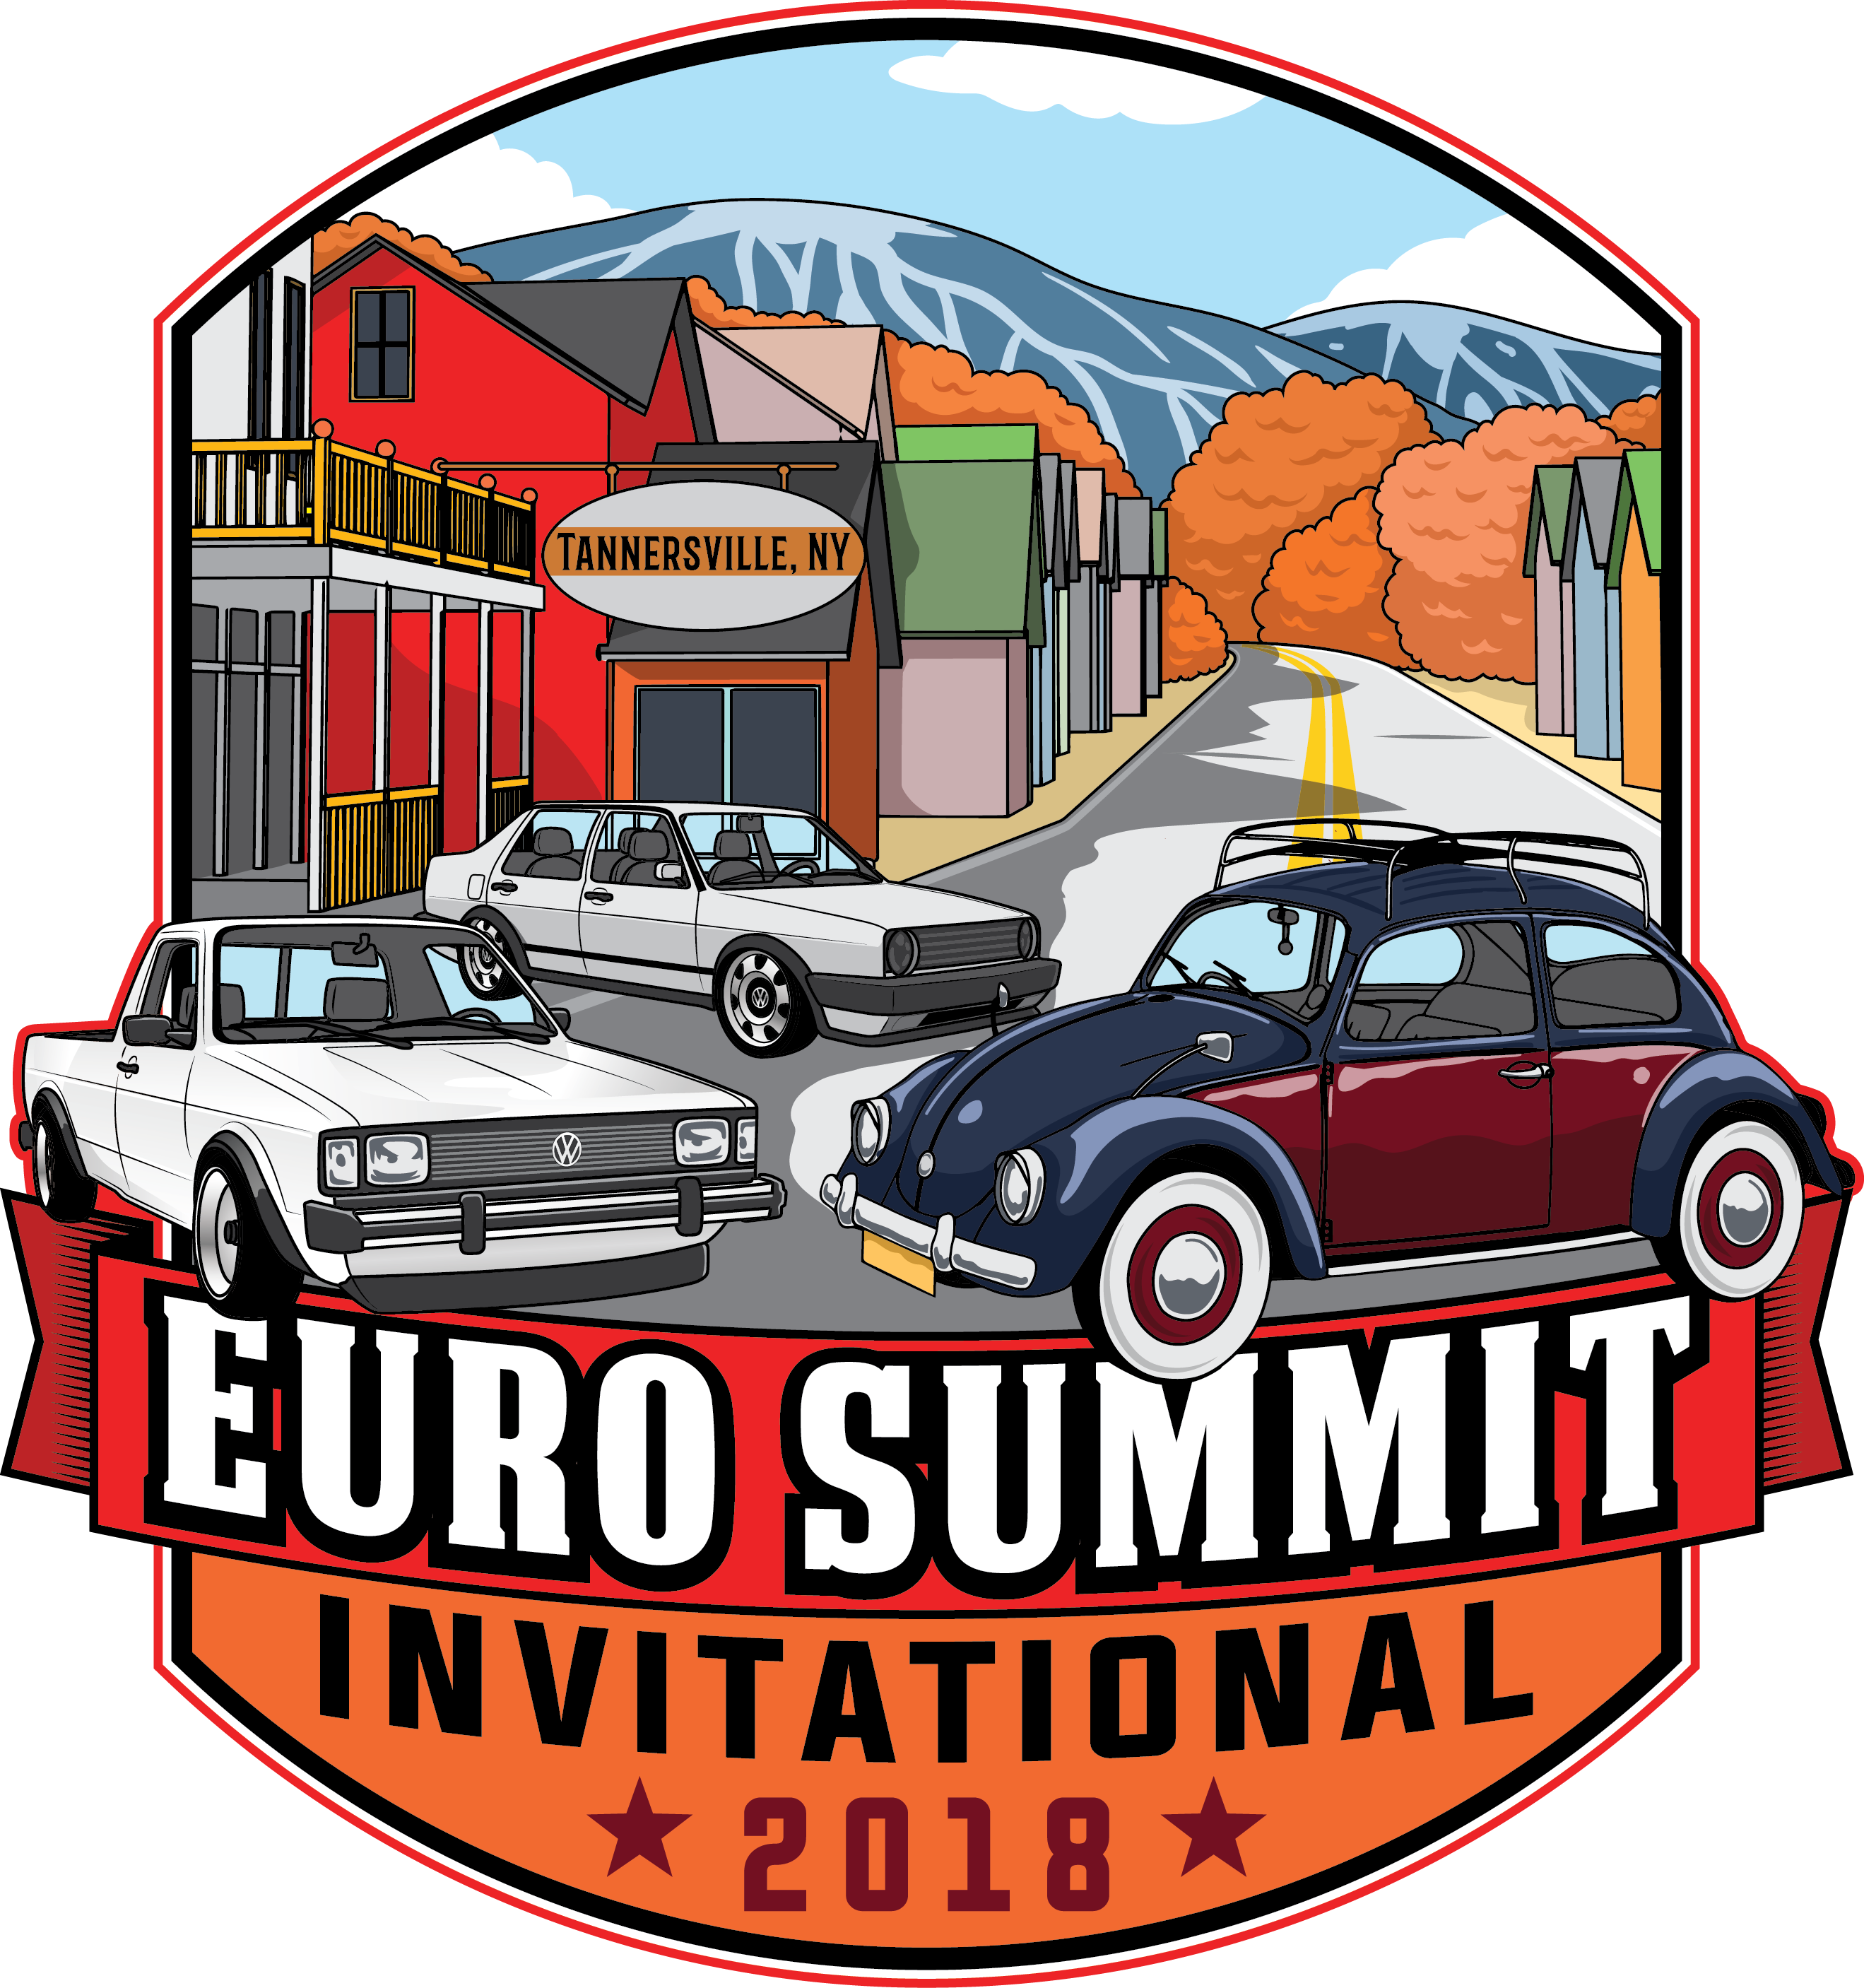 Euro Summit Inivitational 2018 Artwork contest for Thousands of people to see!